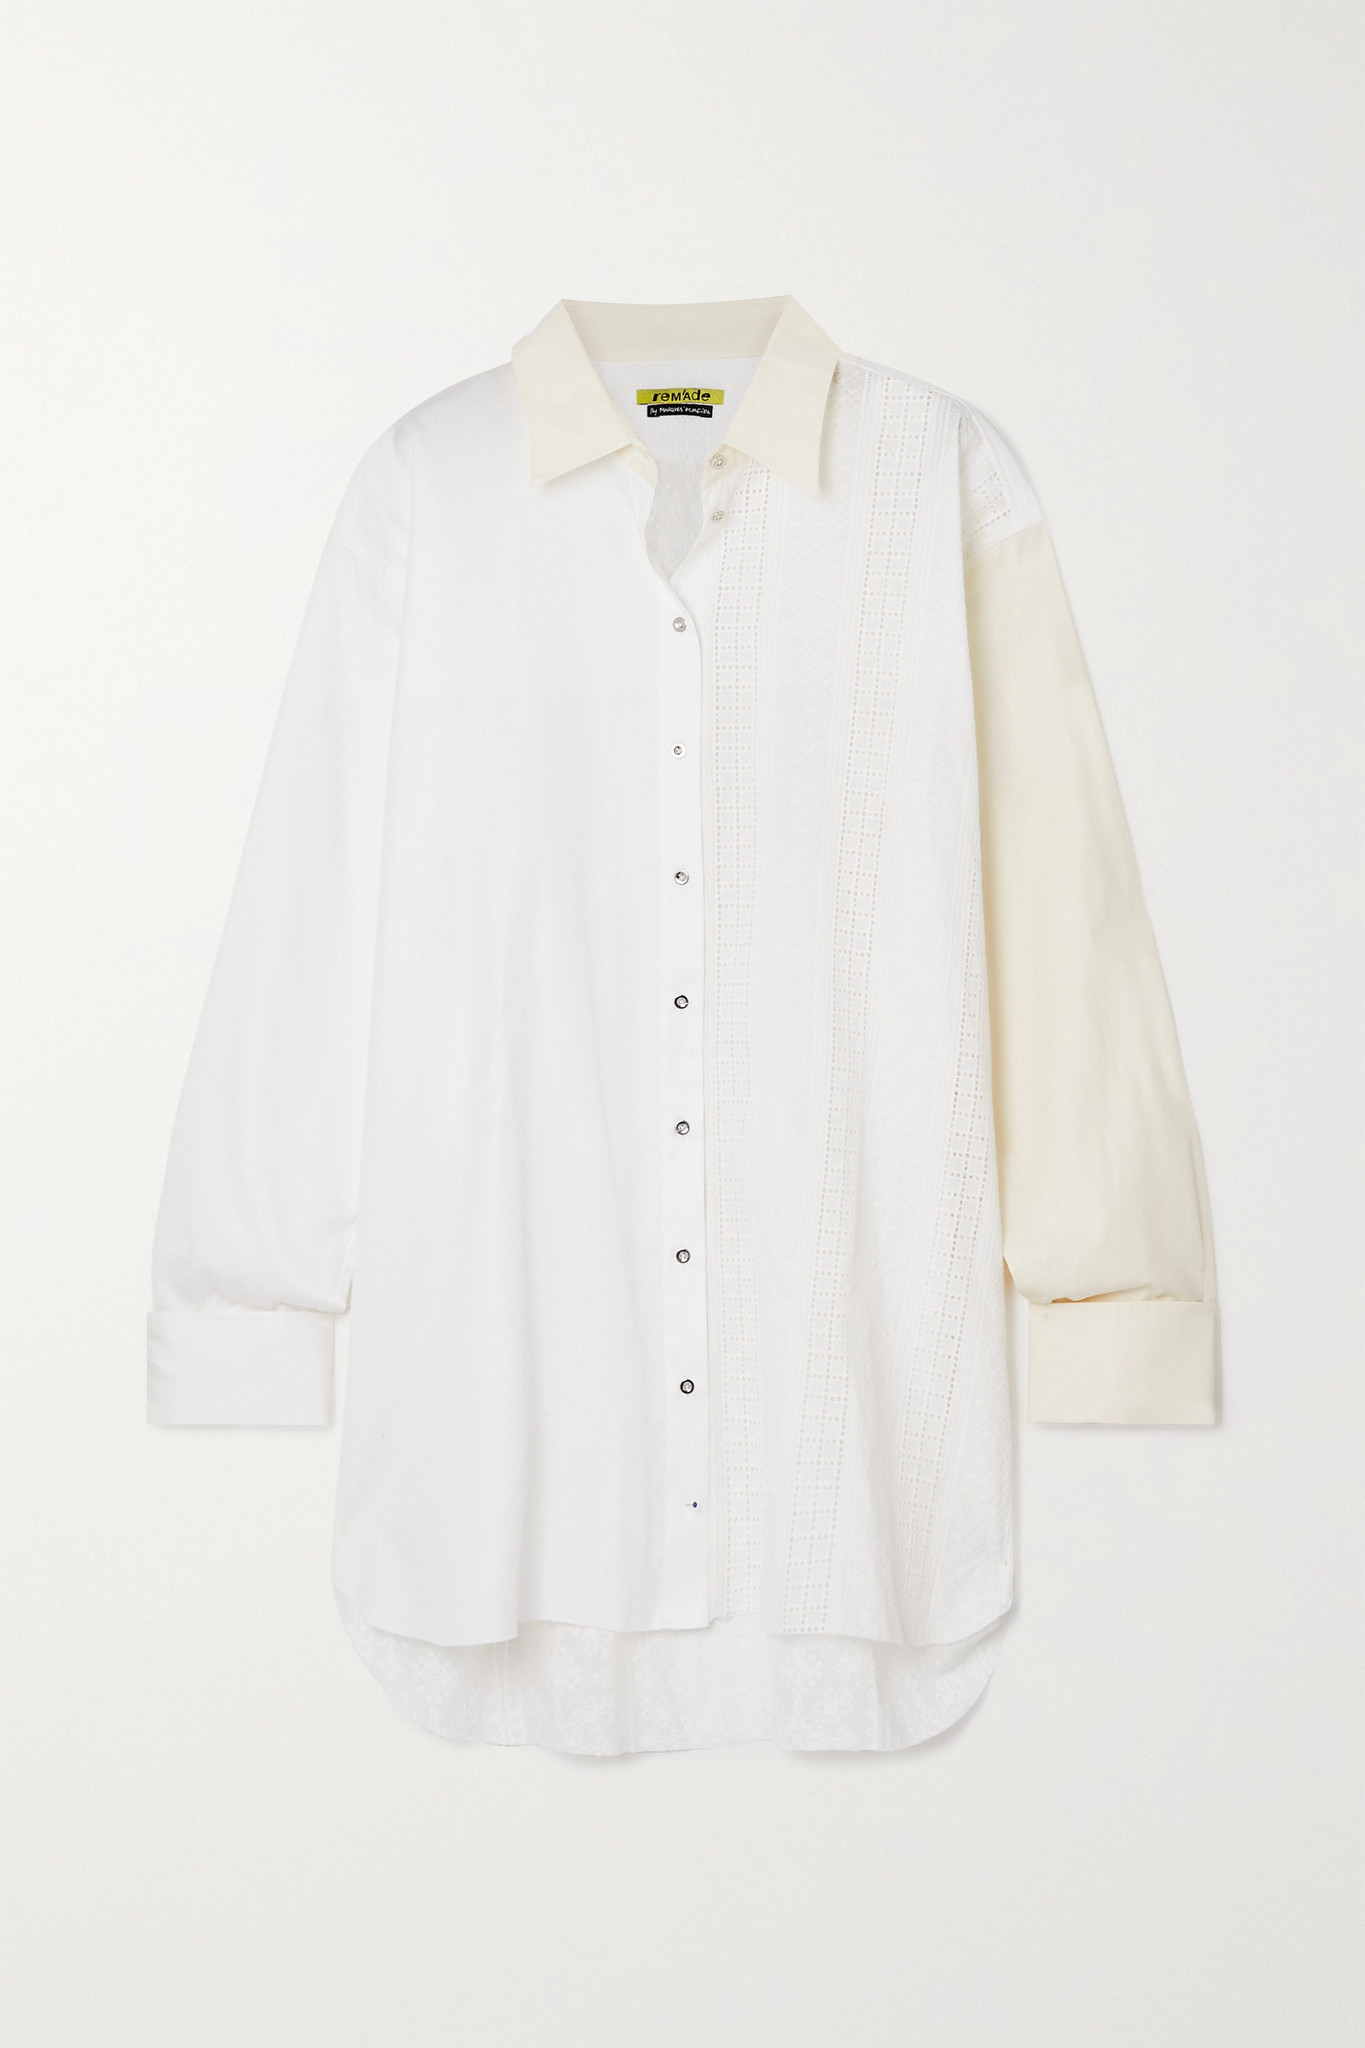 MARQUES' ALMEIDA - + Net Sustain Rem'ade By Marques' Almeida Two-tone Paneled Cotton Shirt - White -